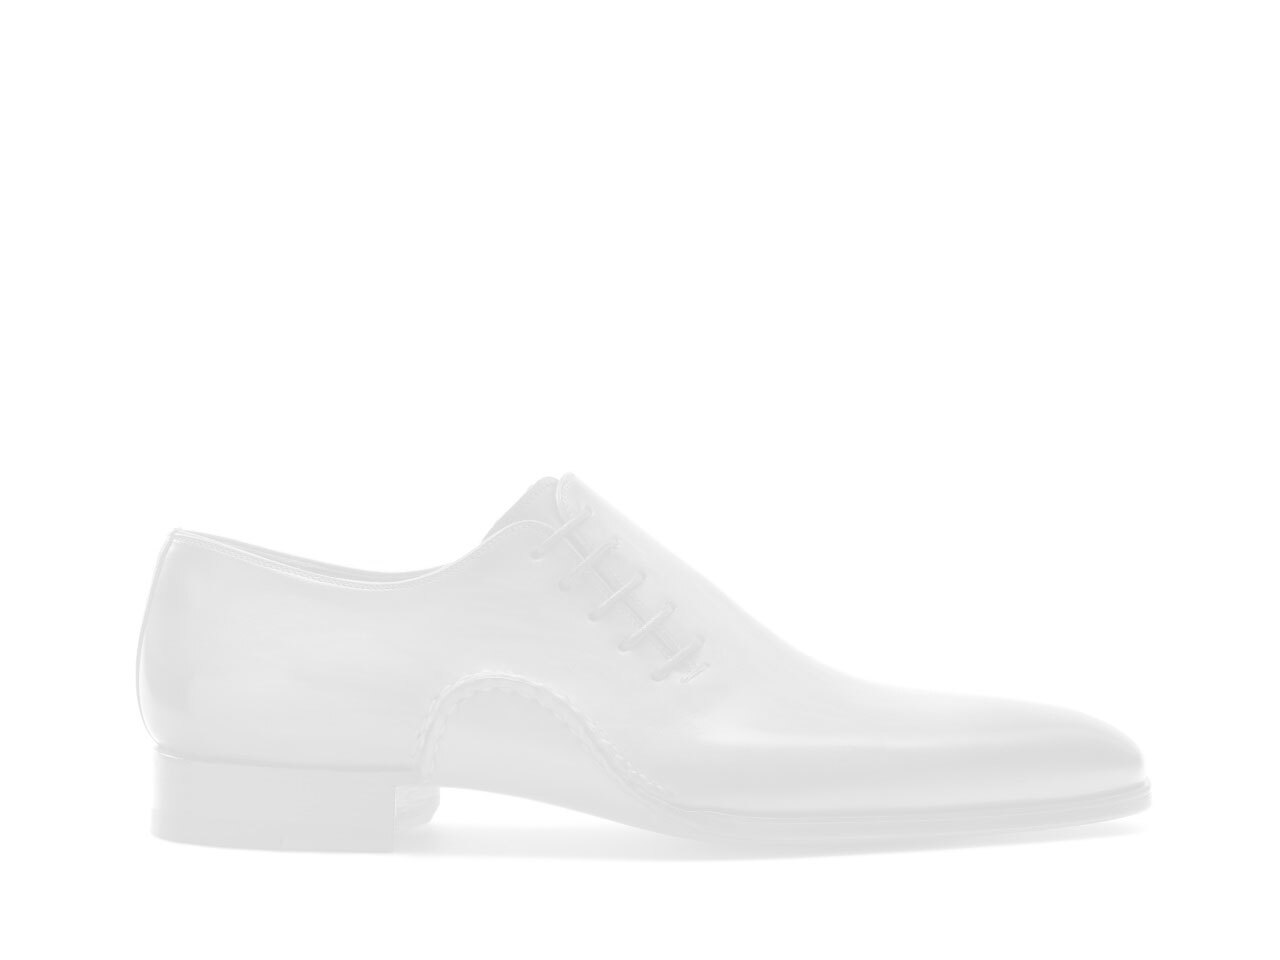 The Magnanni Nerja | White and Cuero